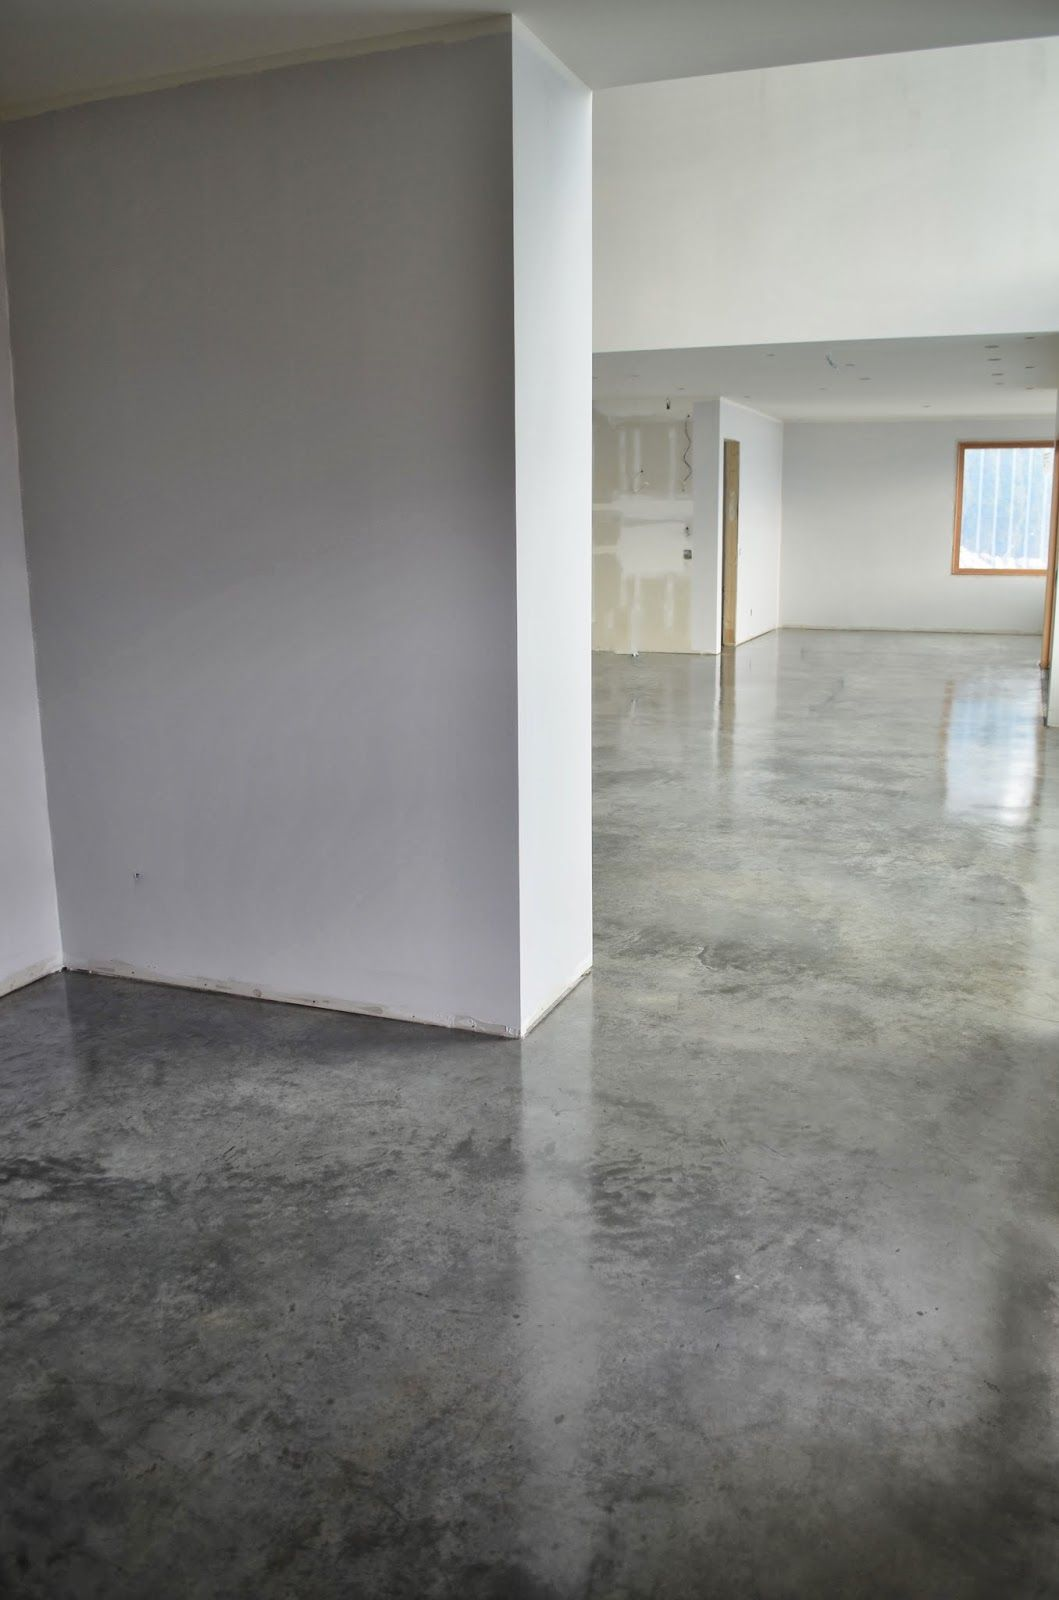 Marvelous Simple Waxed Concrete Floors   Option For Floor Finish With Big Area Rugs  For Warmth And Color.